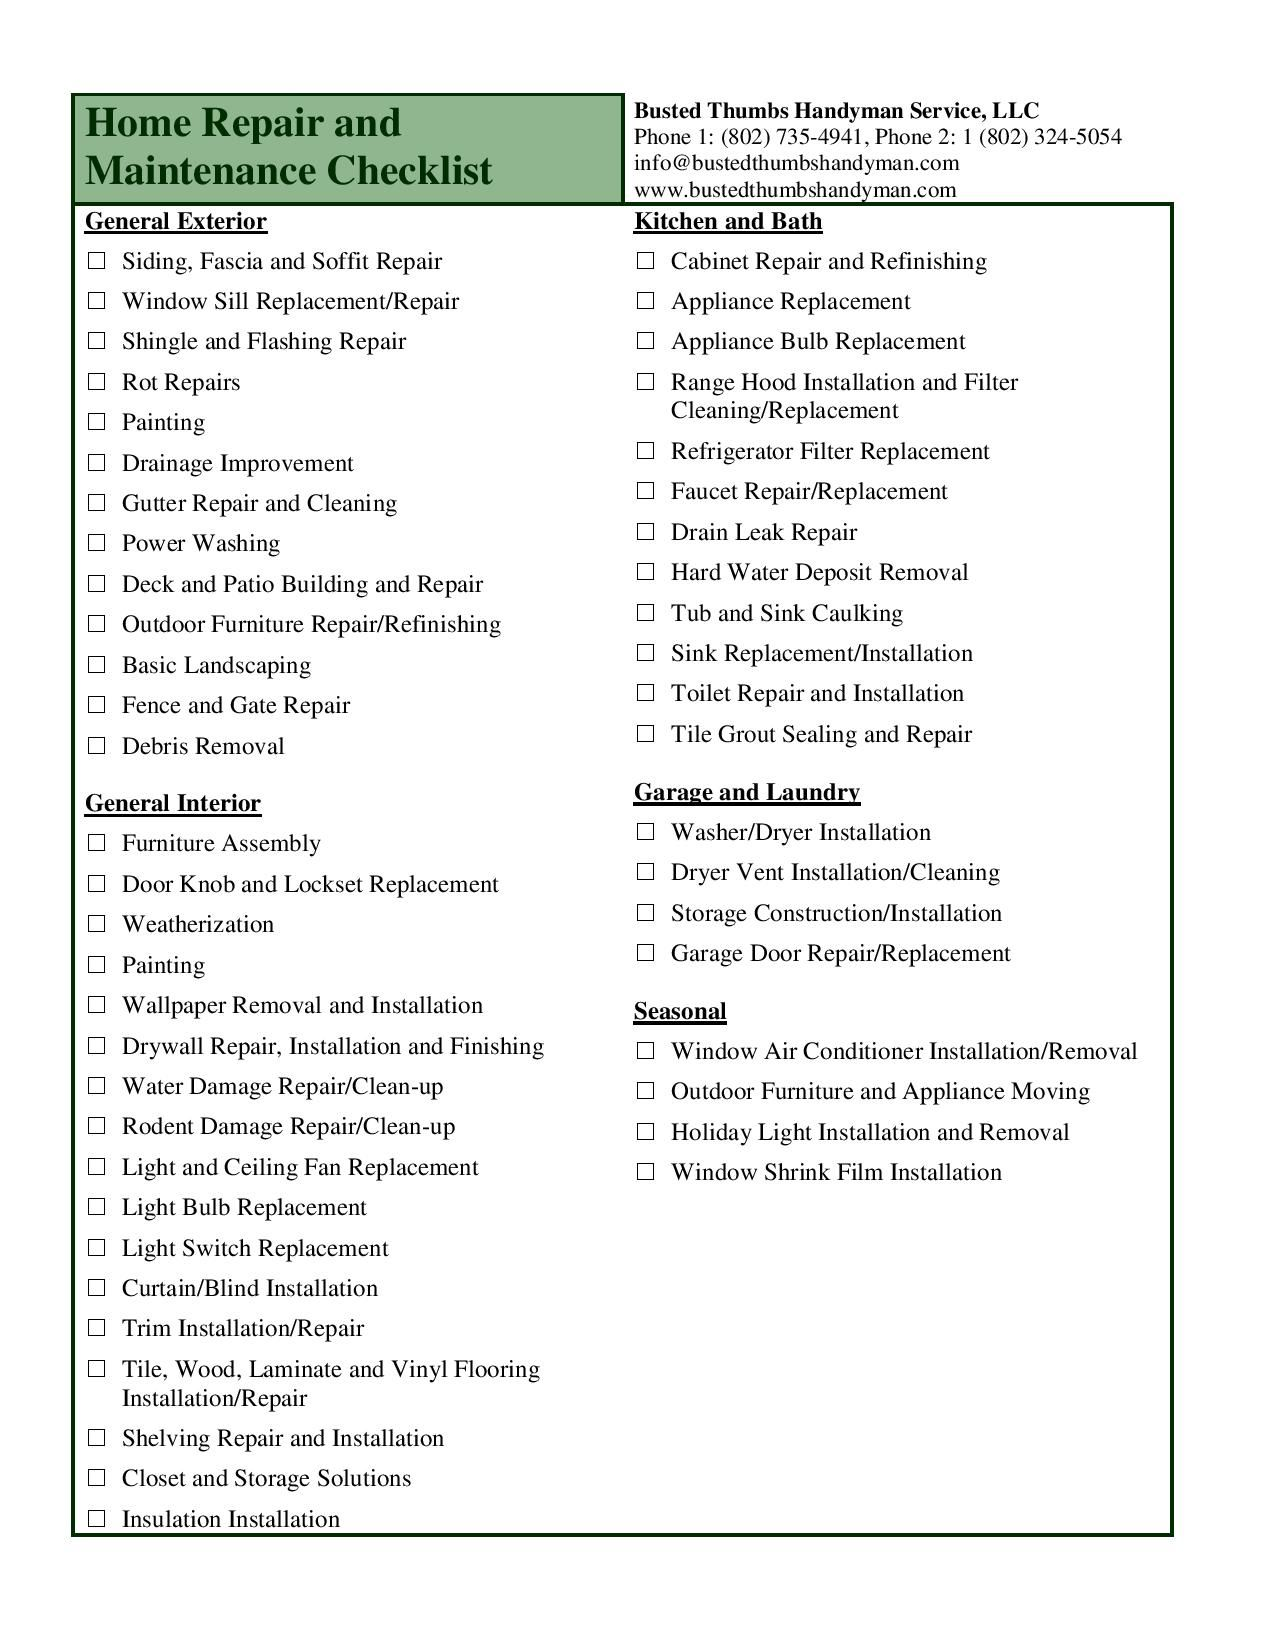 Home Remodeling Project Checklist   Mlthree.Com